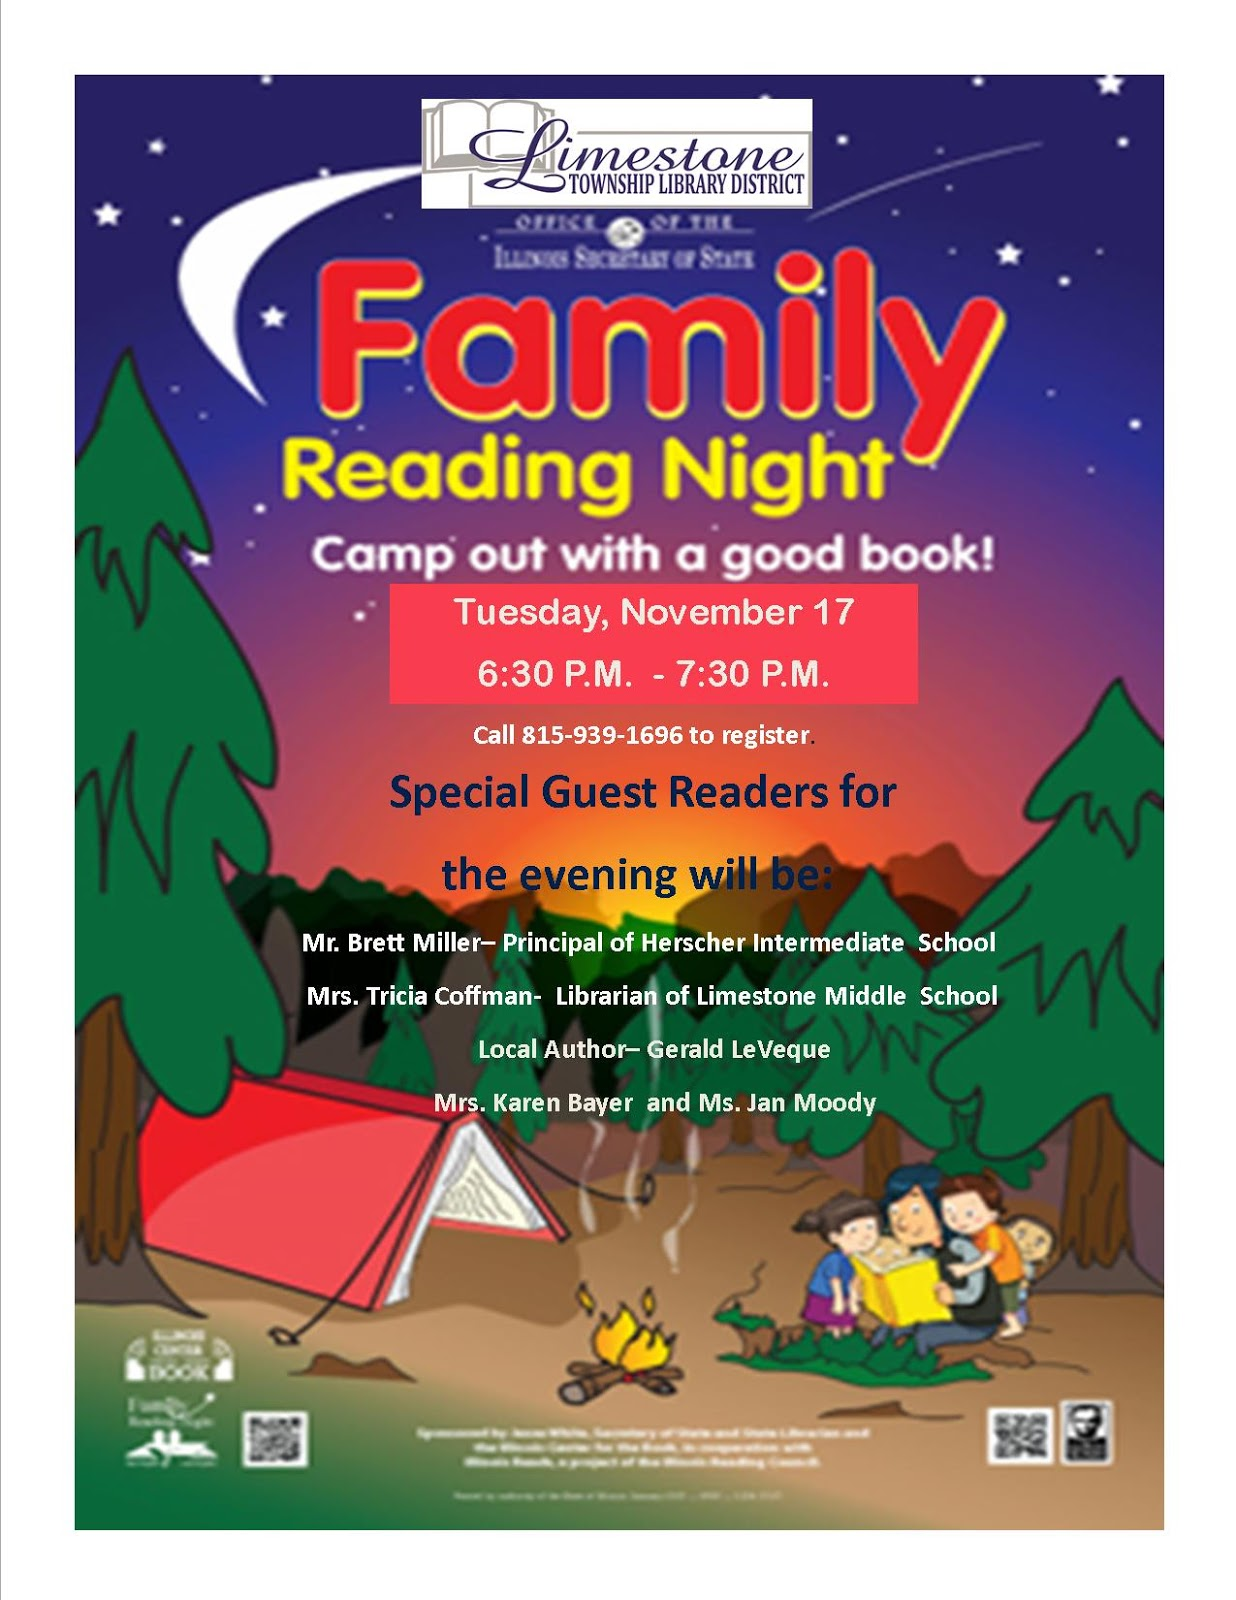 Limestone Township Library District Family Reading Night - Family reading night flyer template